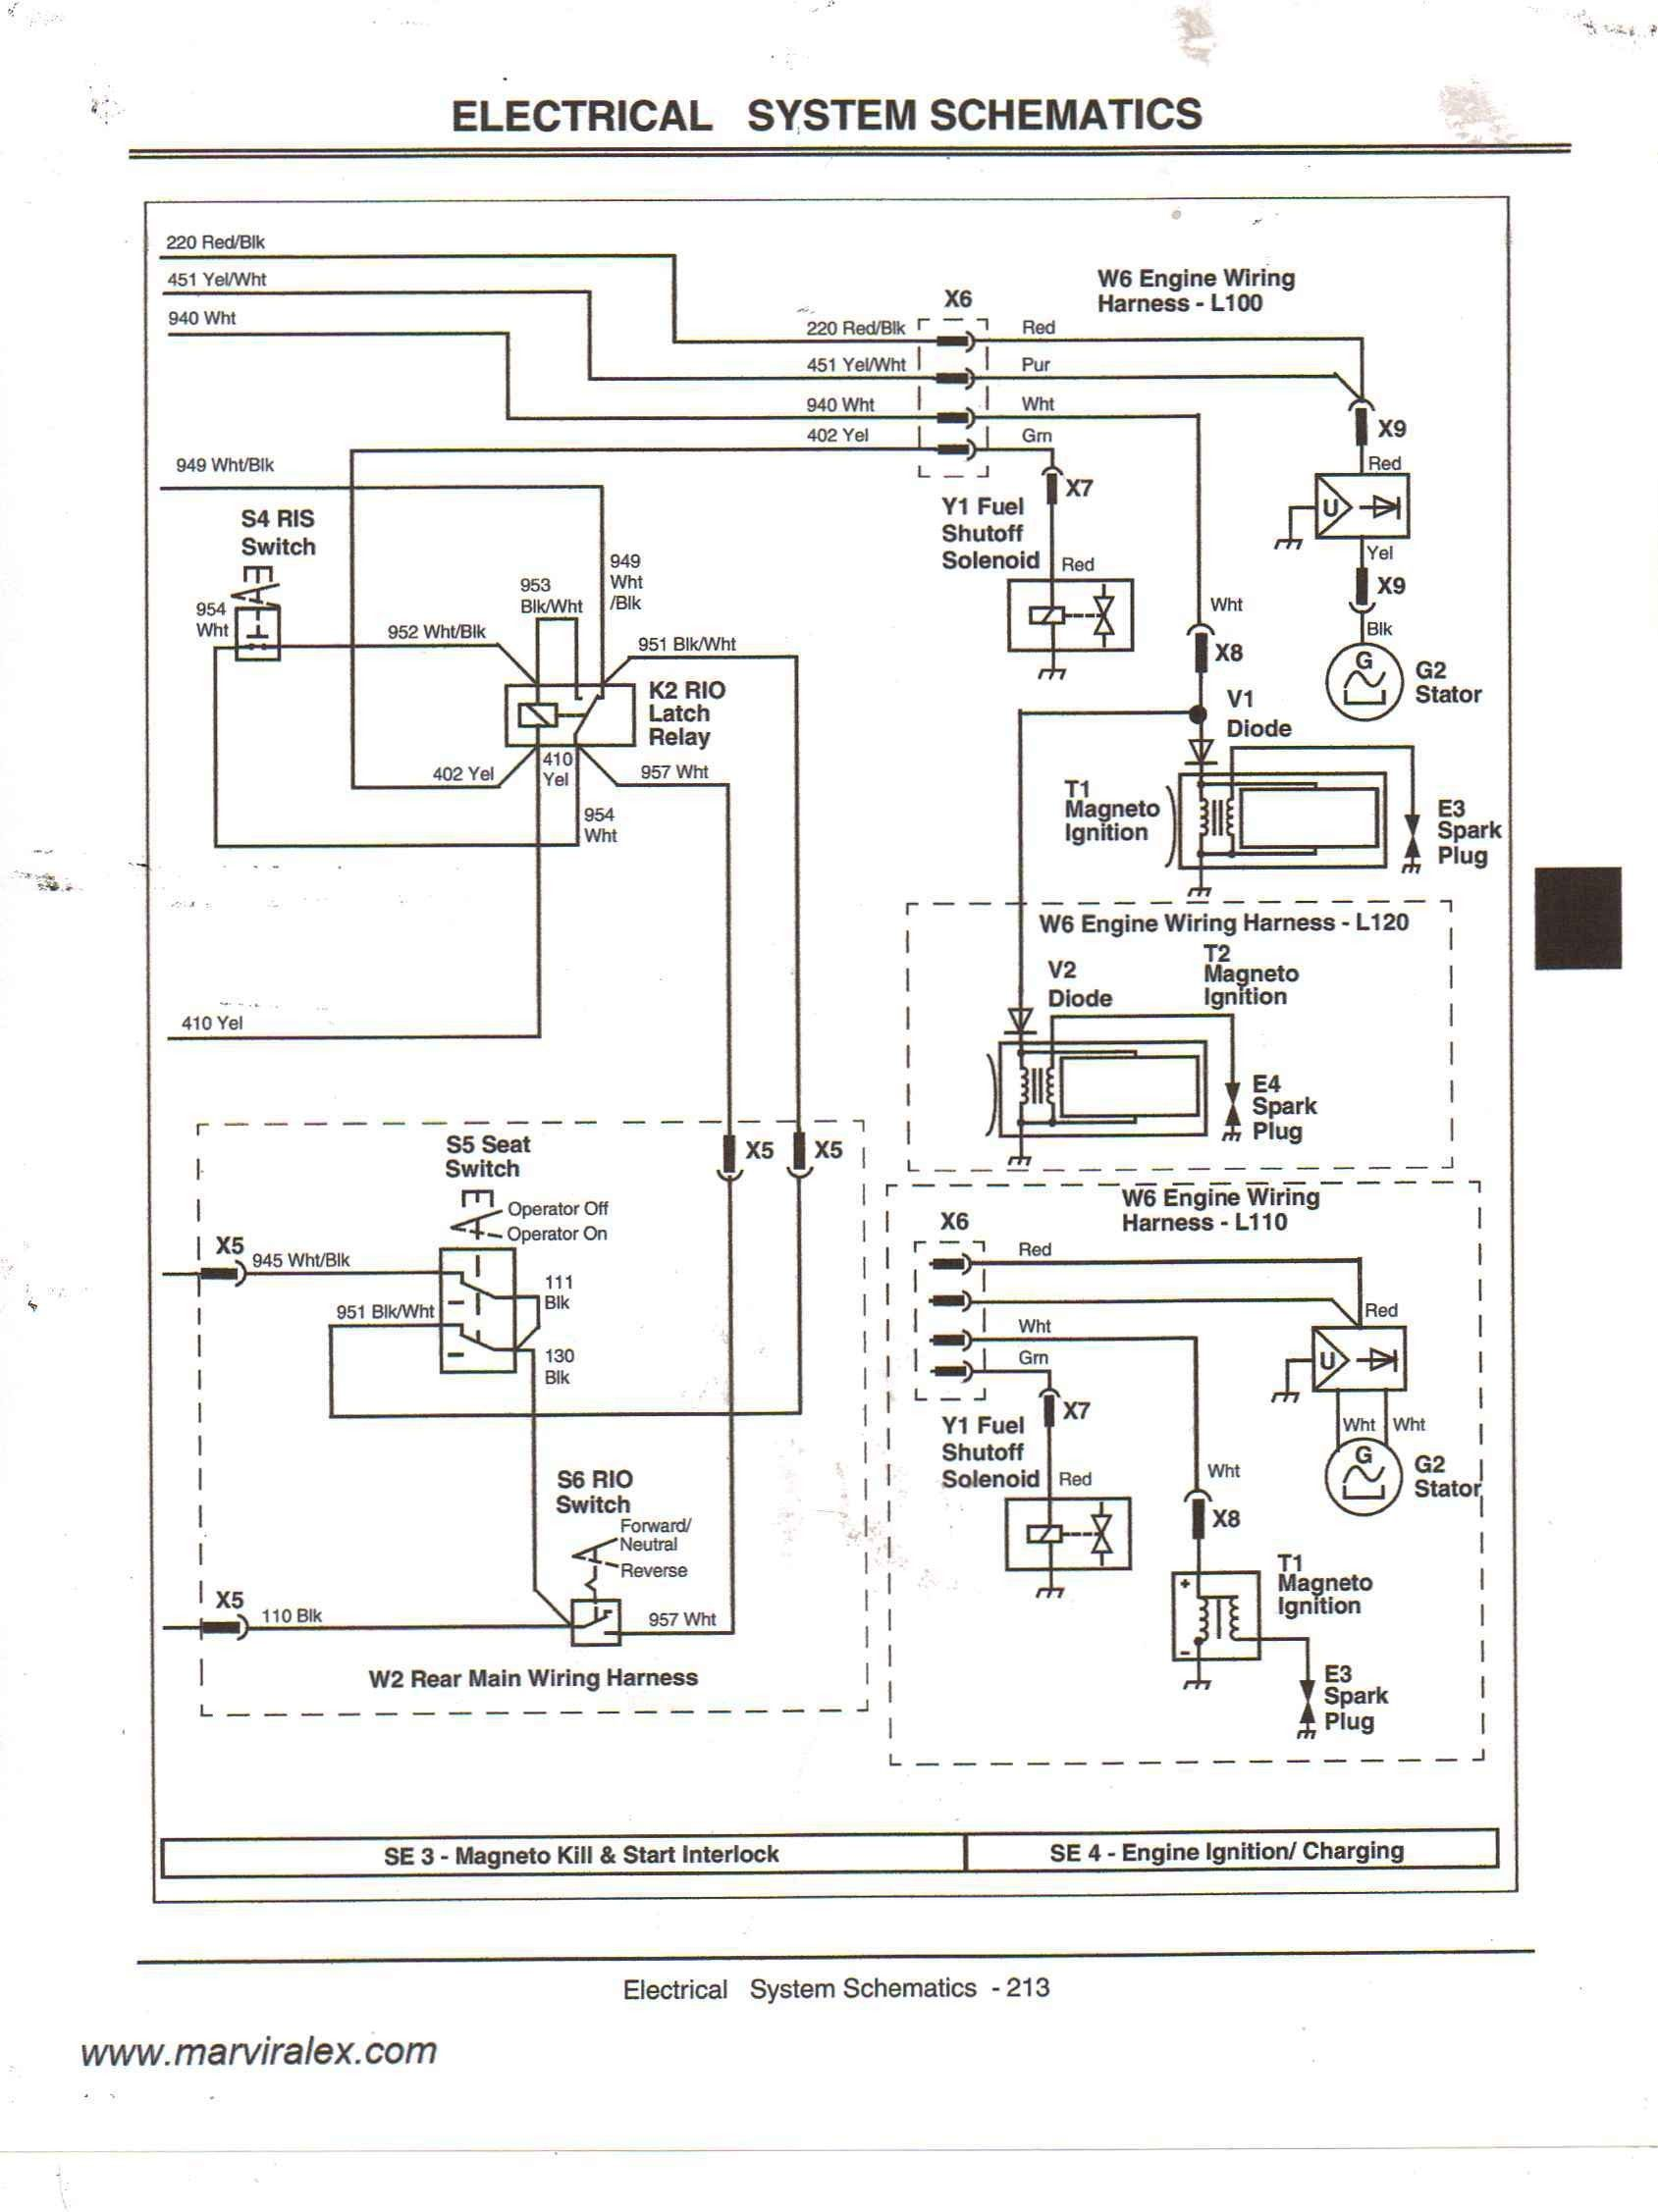 he_8363] 220v wiring diagram free download wiring diagram schematic free  diagram  ation weveq magn jidig inama mohammedshrine librar wiring 101